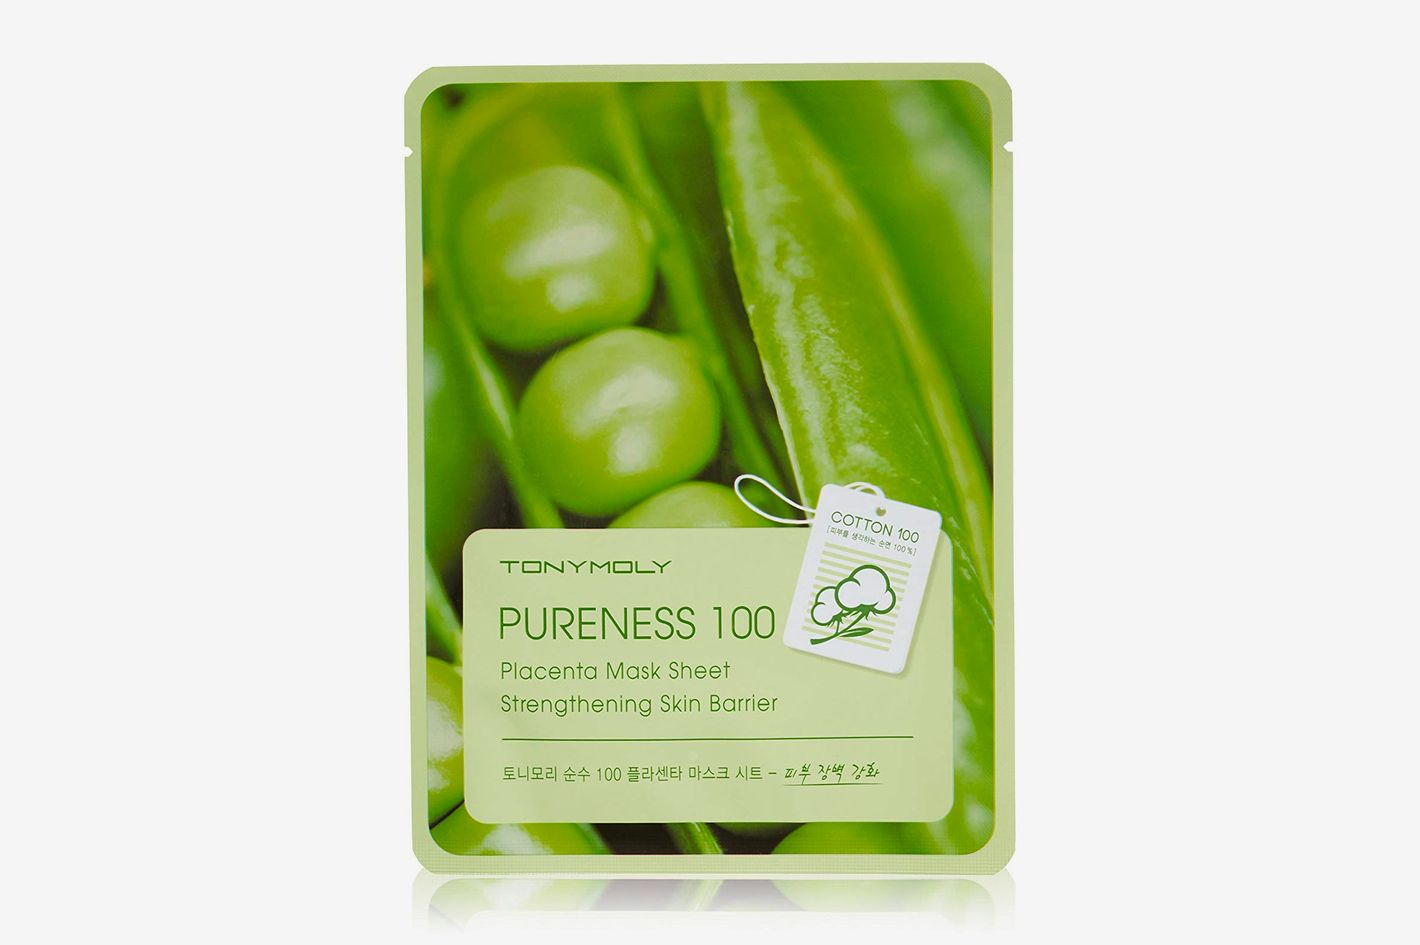 Tony Molly Pureness 100 Placenta Mask